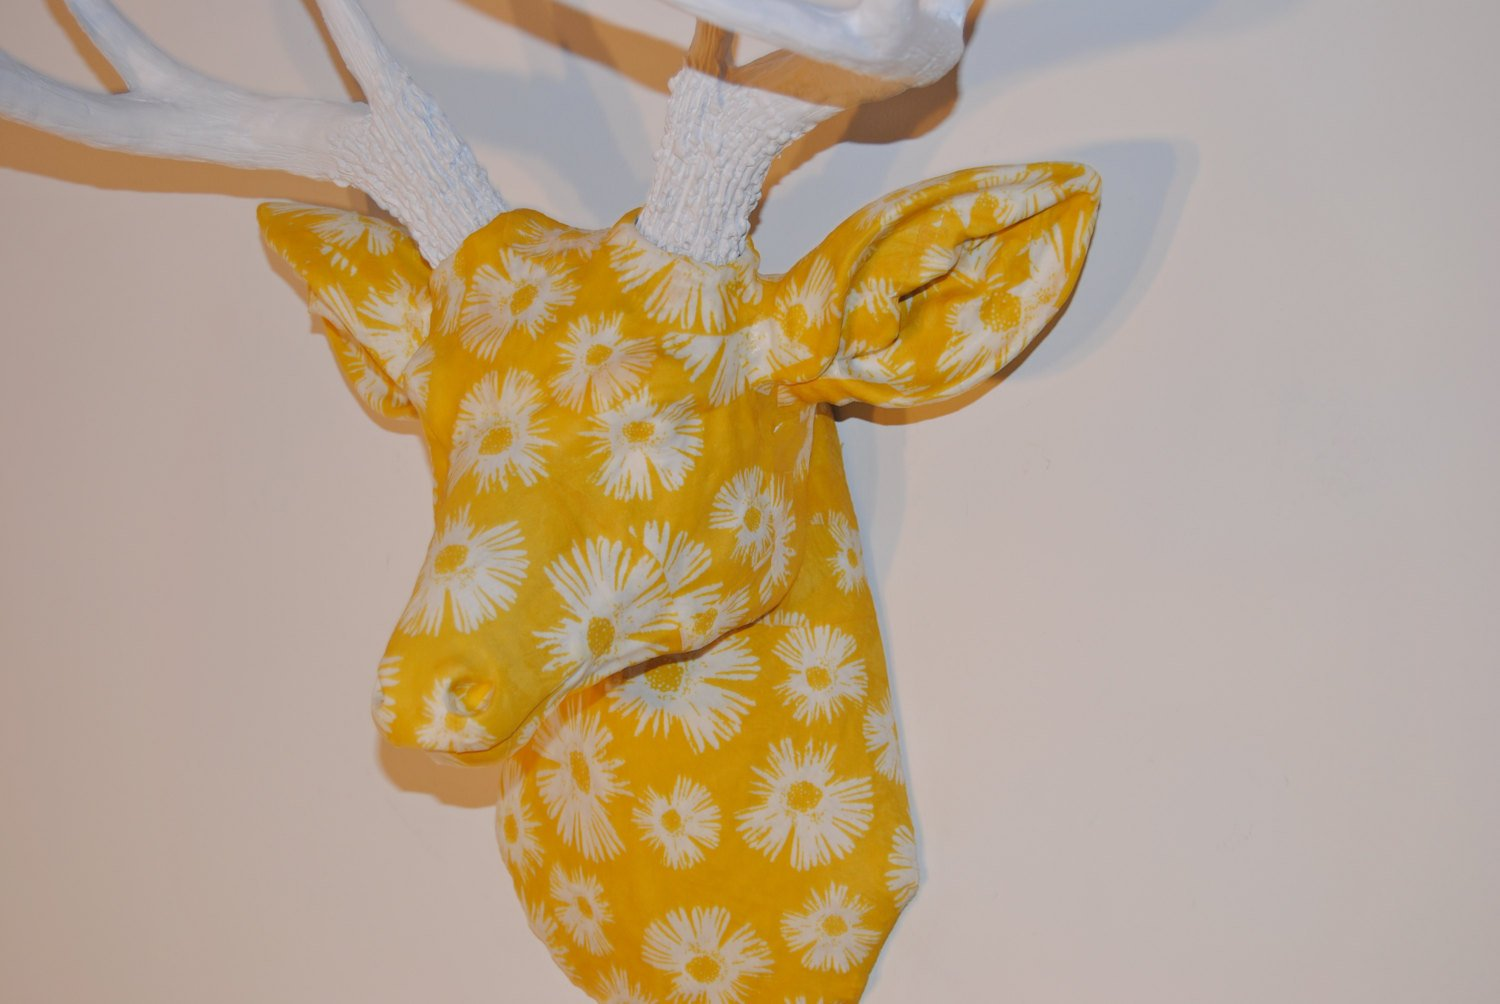 Amazon.com: Fabric Deer Head Wall Mount - Yellow and White Flower ...